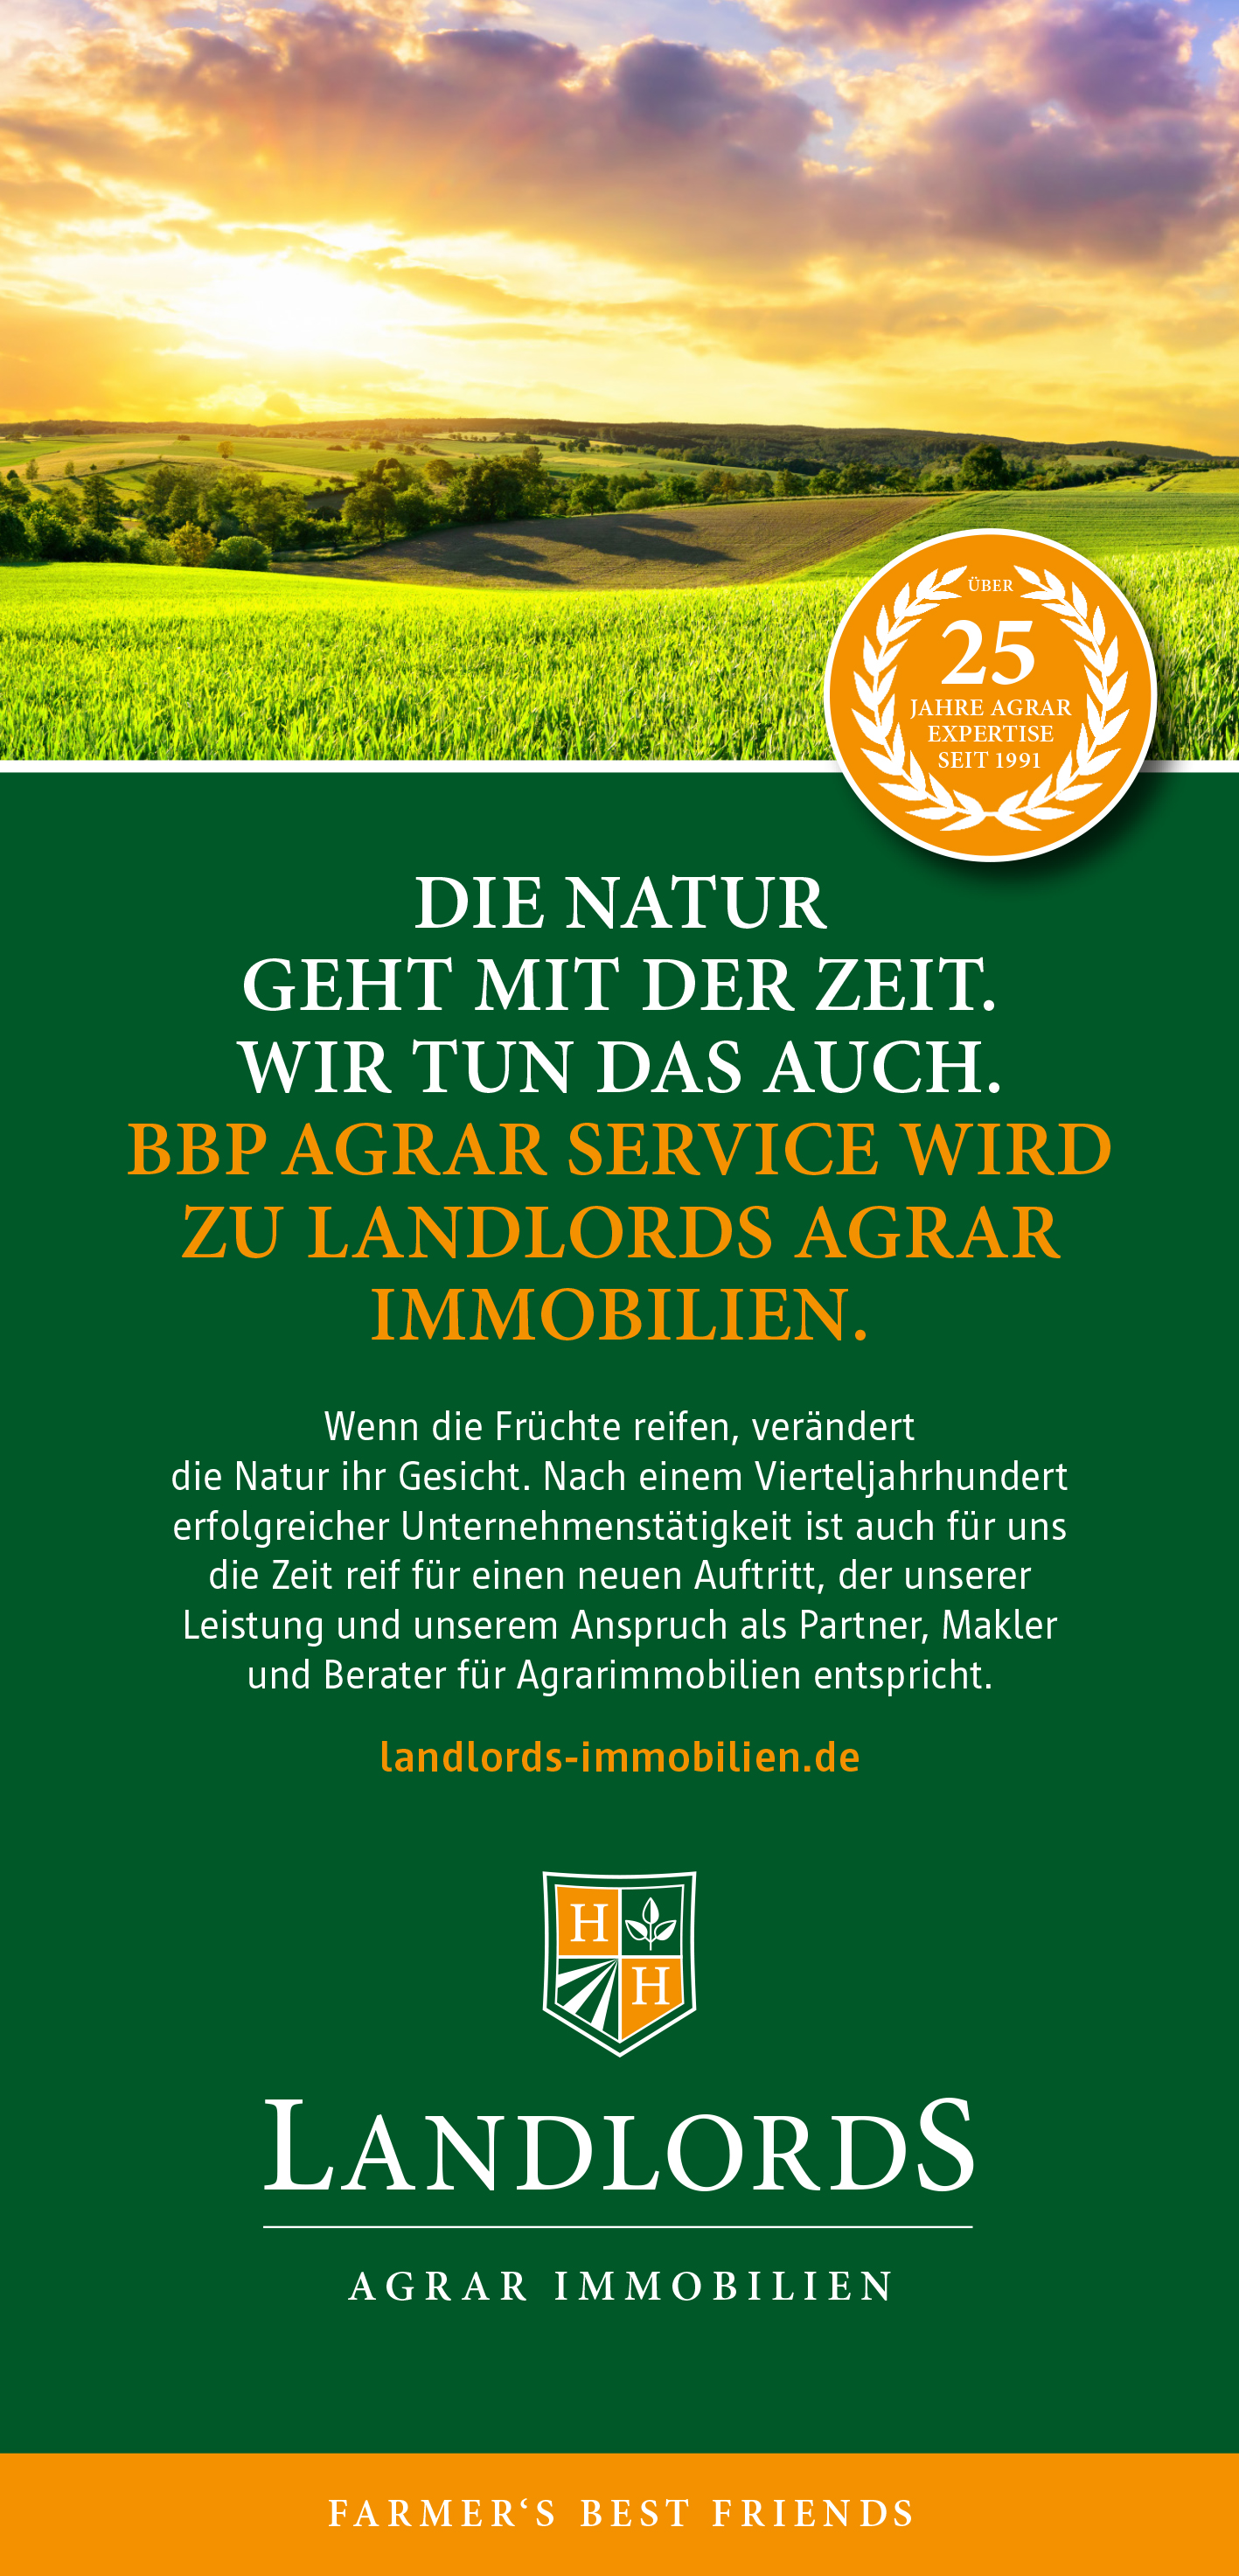 Farmer's Best Friends: BBP Agrar Service wird zu LANDLORDS®